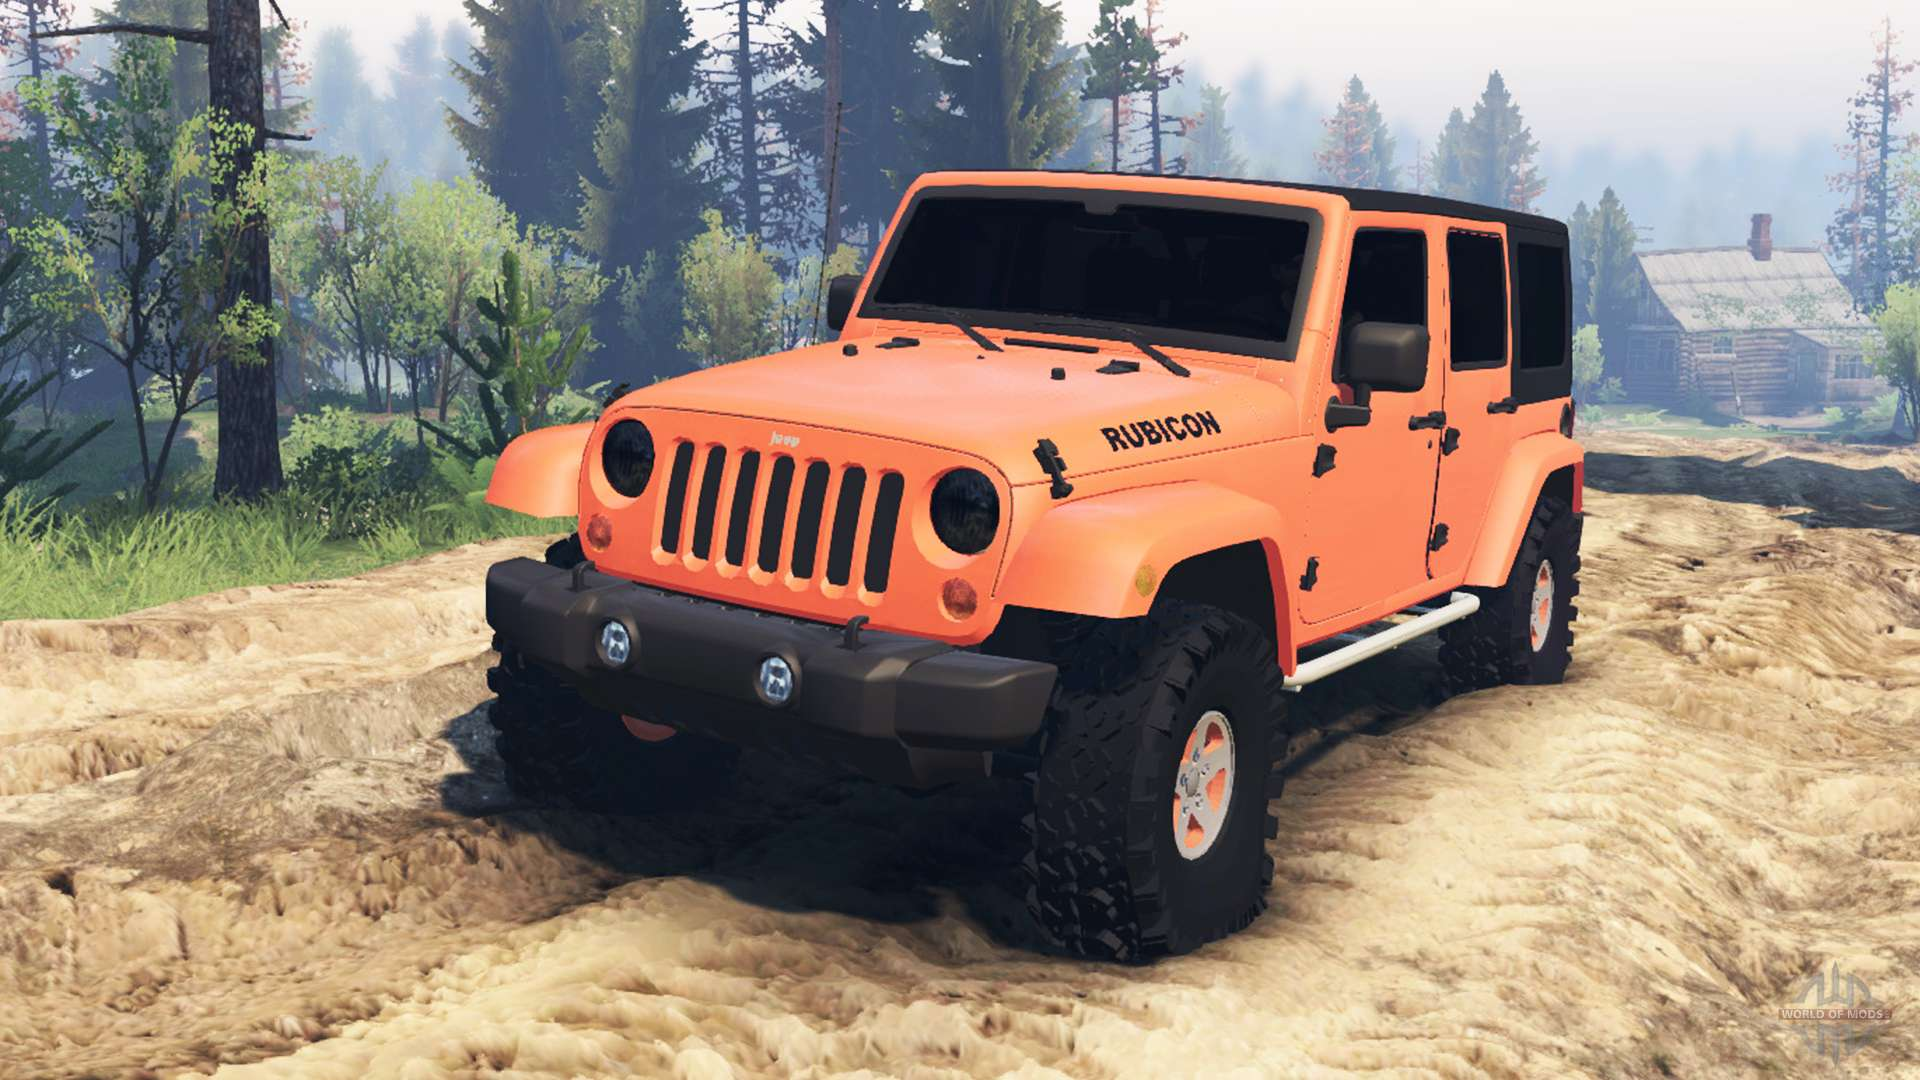 rubicon product wrangler awesomeamazinggreat suv automa pearlcoat v cyl jeep hydro blue unlimited amazing